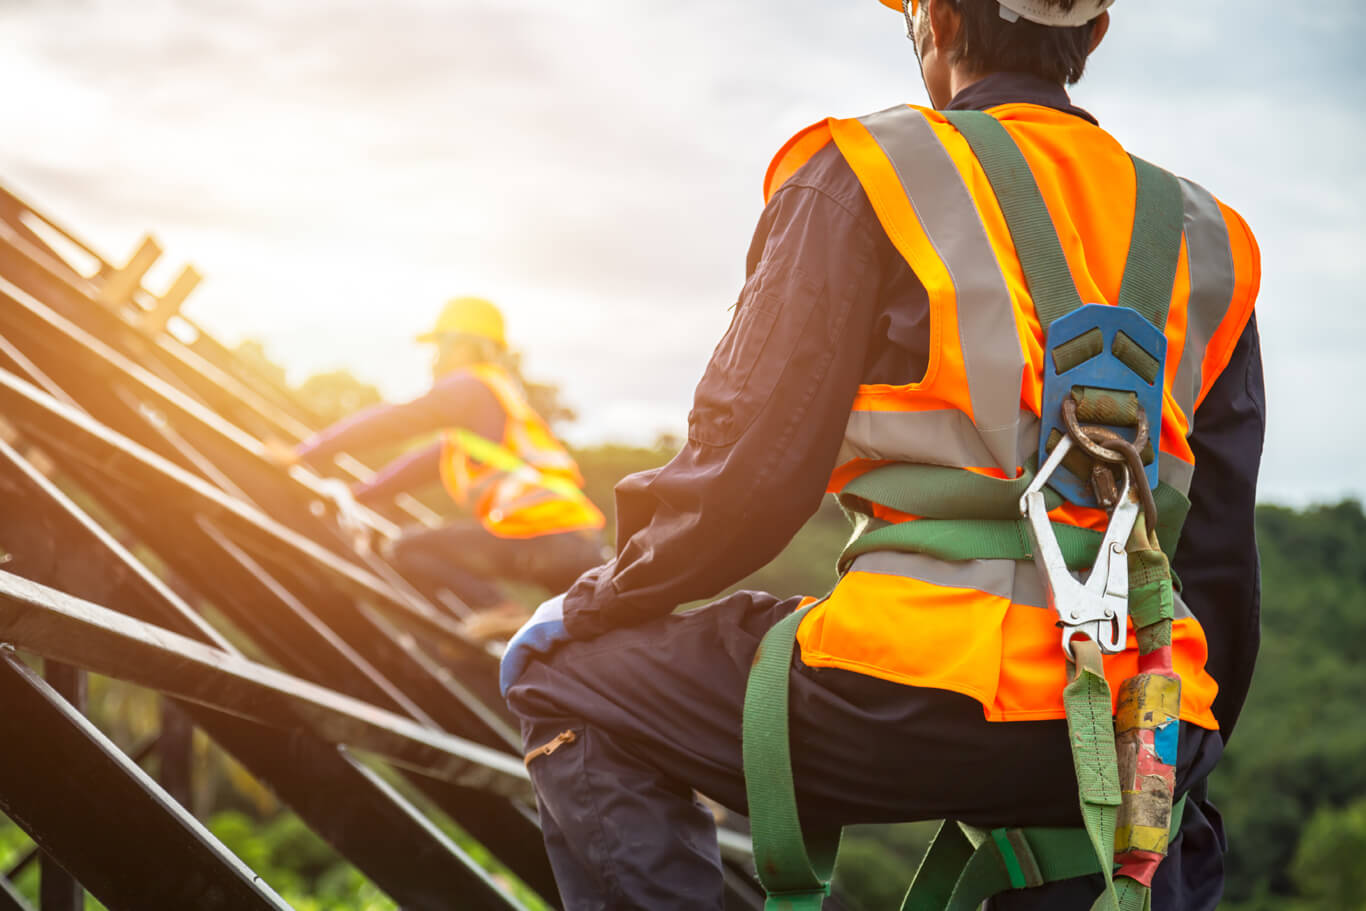 workers wear fall arrest systems per scaffolding safety guidelines